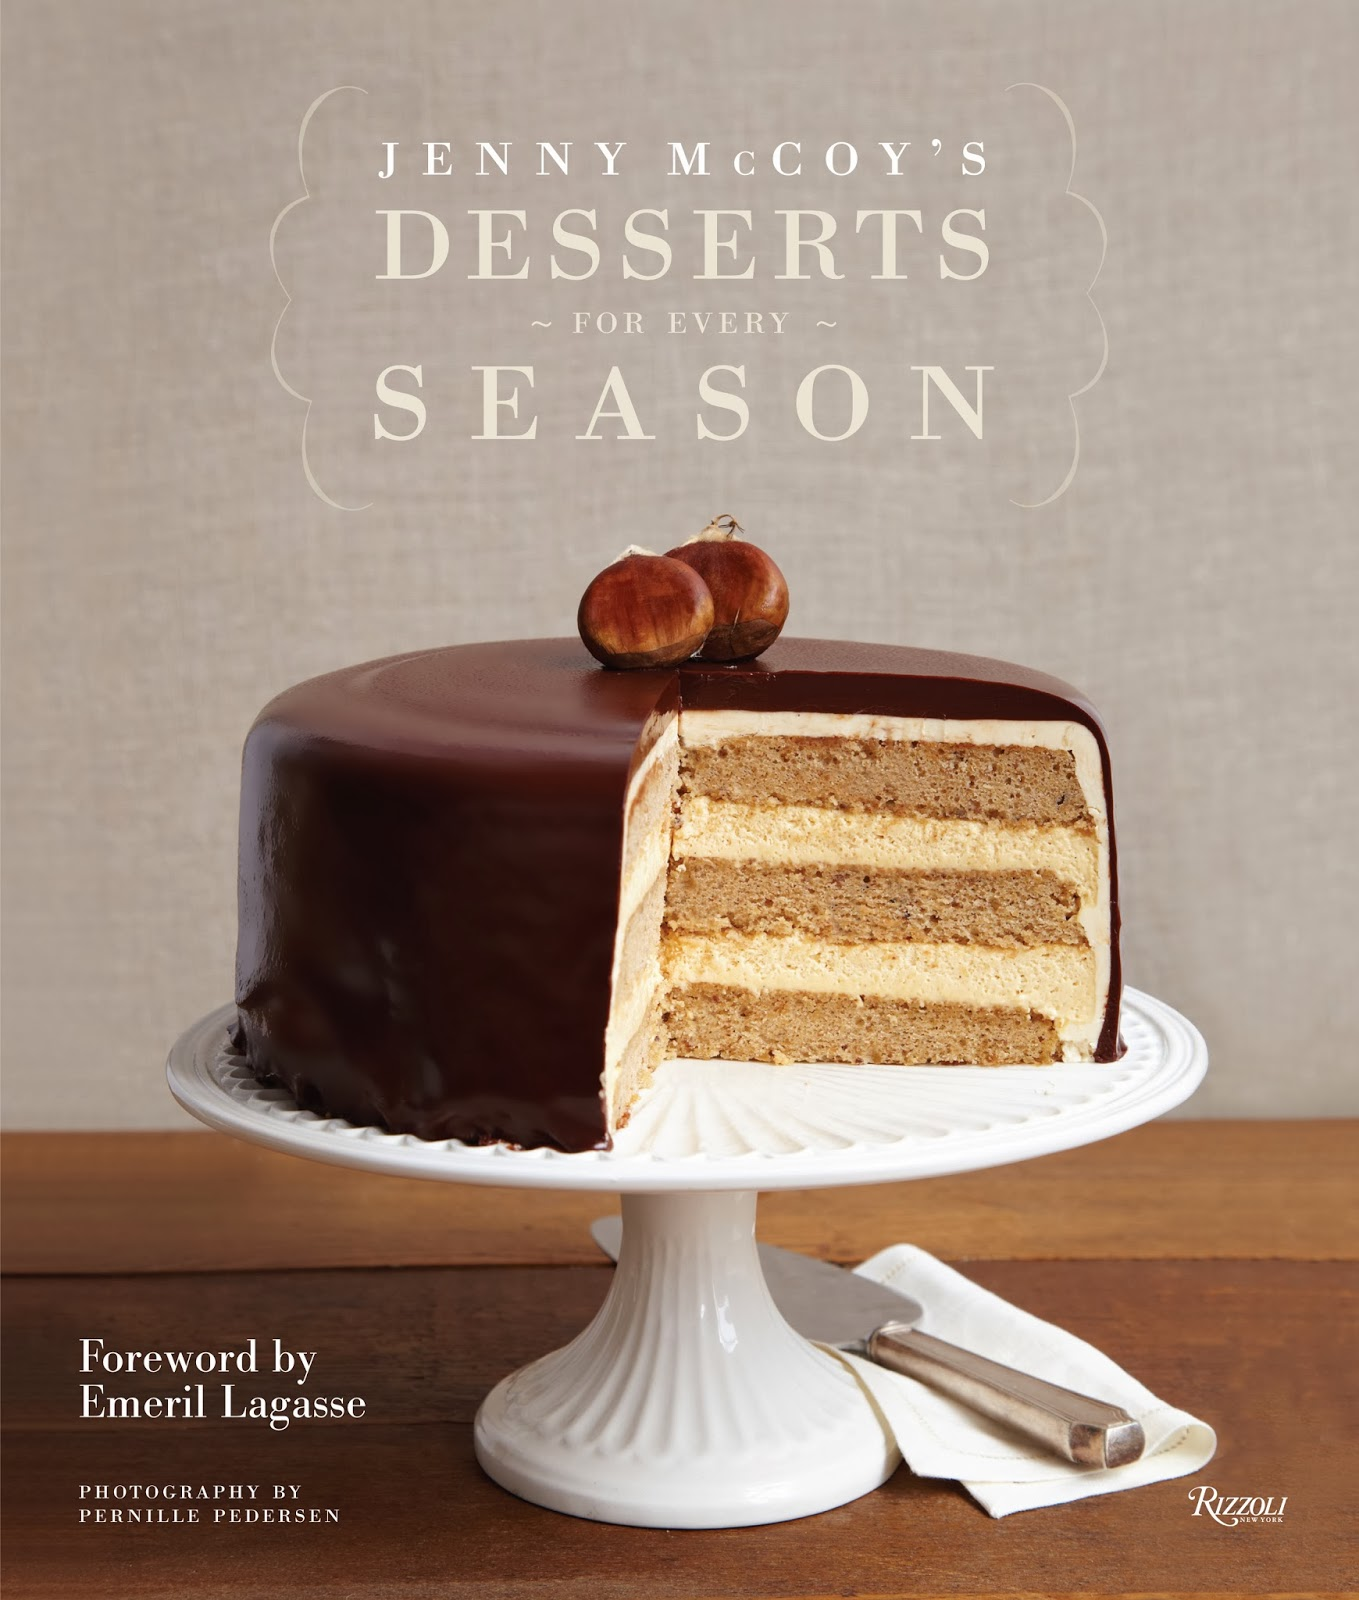 Jenny McCoy's Desserts for Every Season #cookbook #giveaway